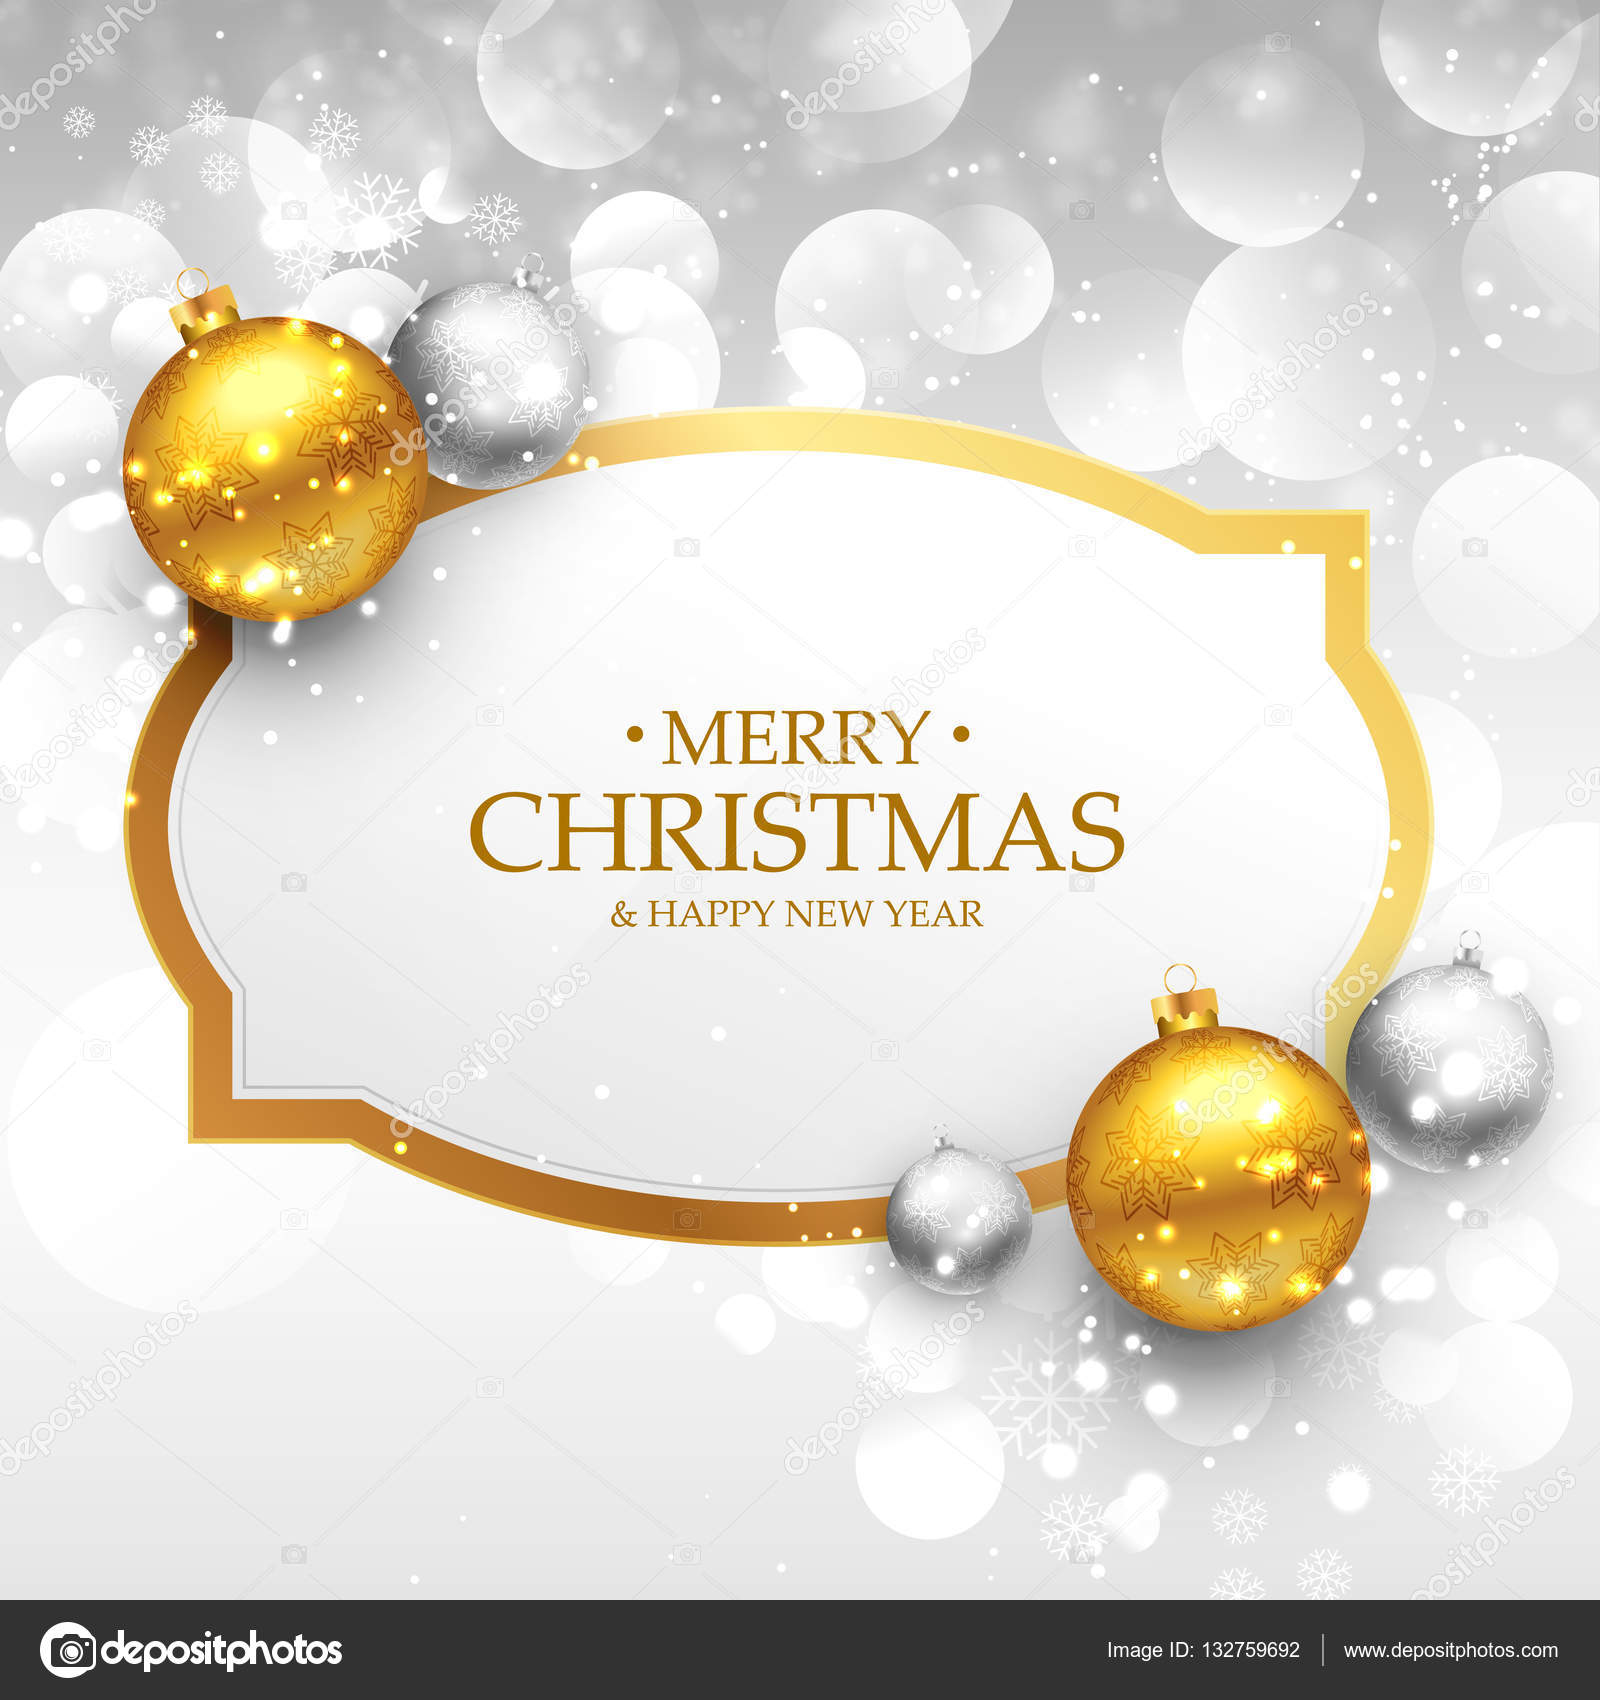 Beautiful Merry Christmas Greeting Design With Realistic